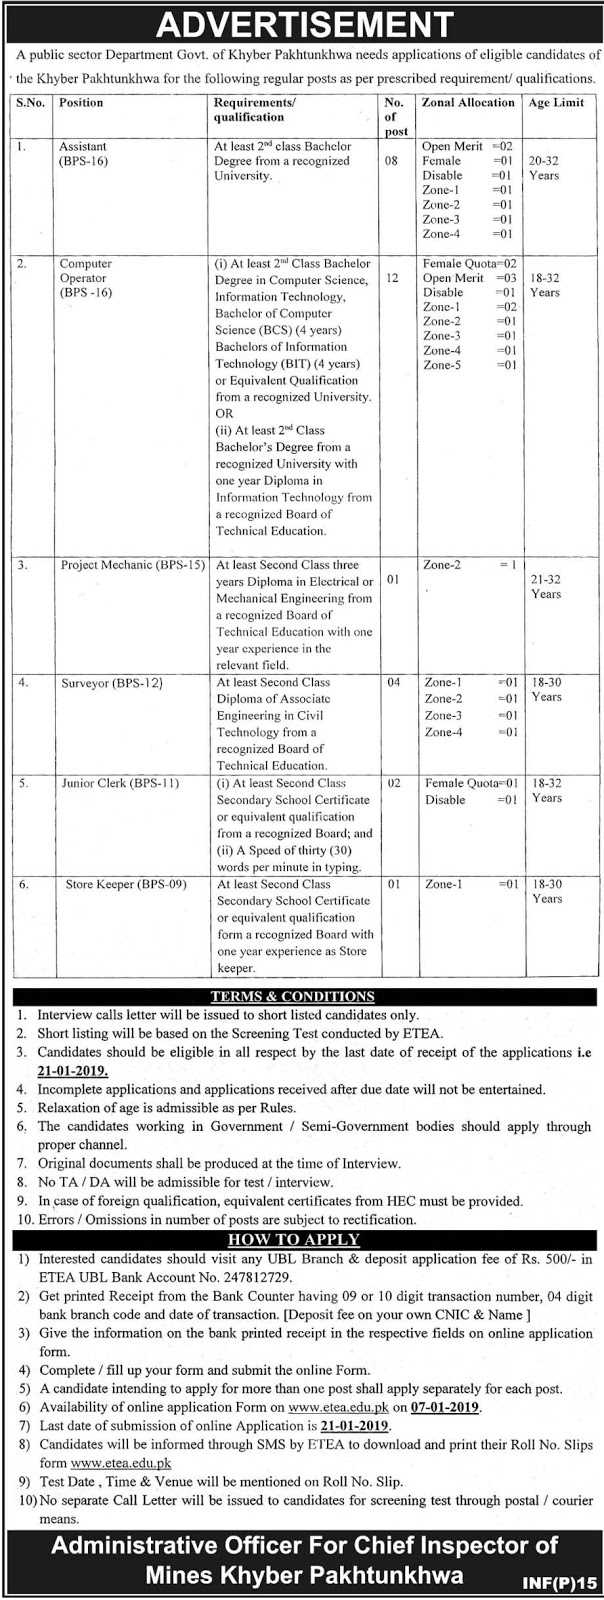 Govt Vacancies in Mines And Minerals Department KPK